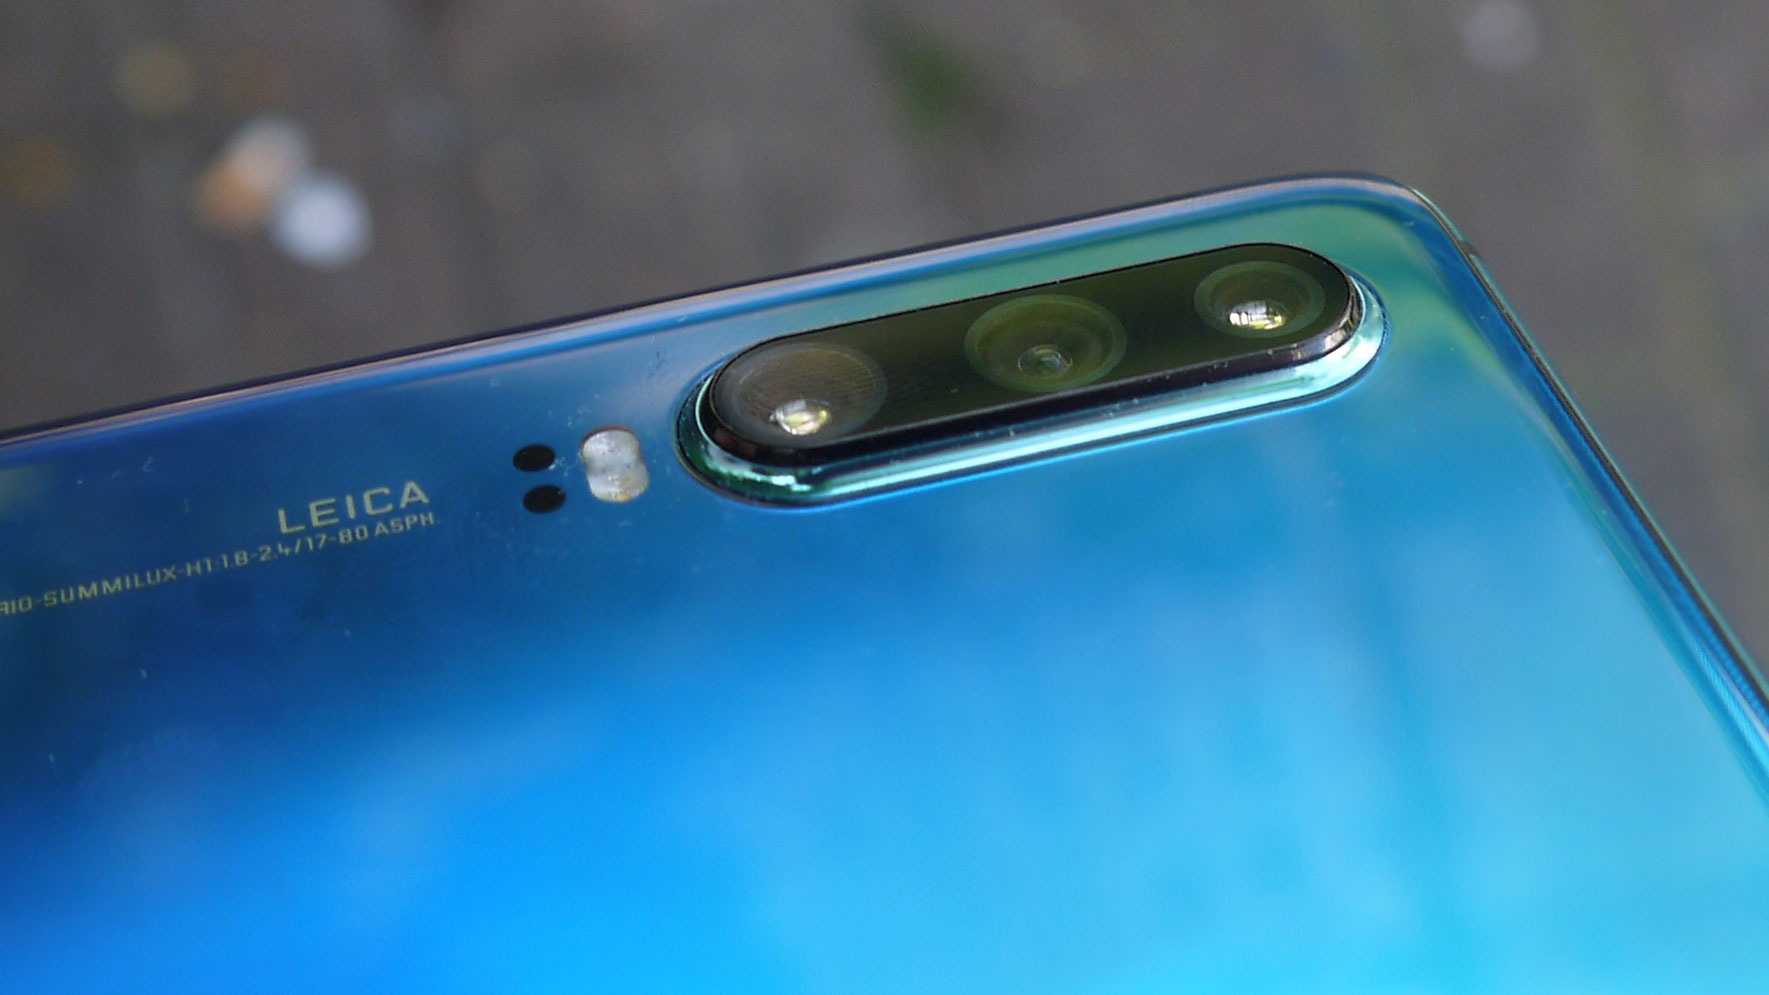 Leaked Huawei P40 renders show a device suspiciously like upcoming Honor phone